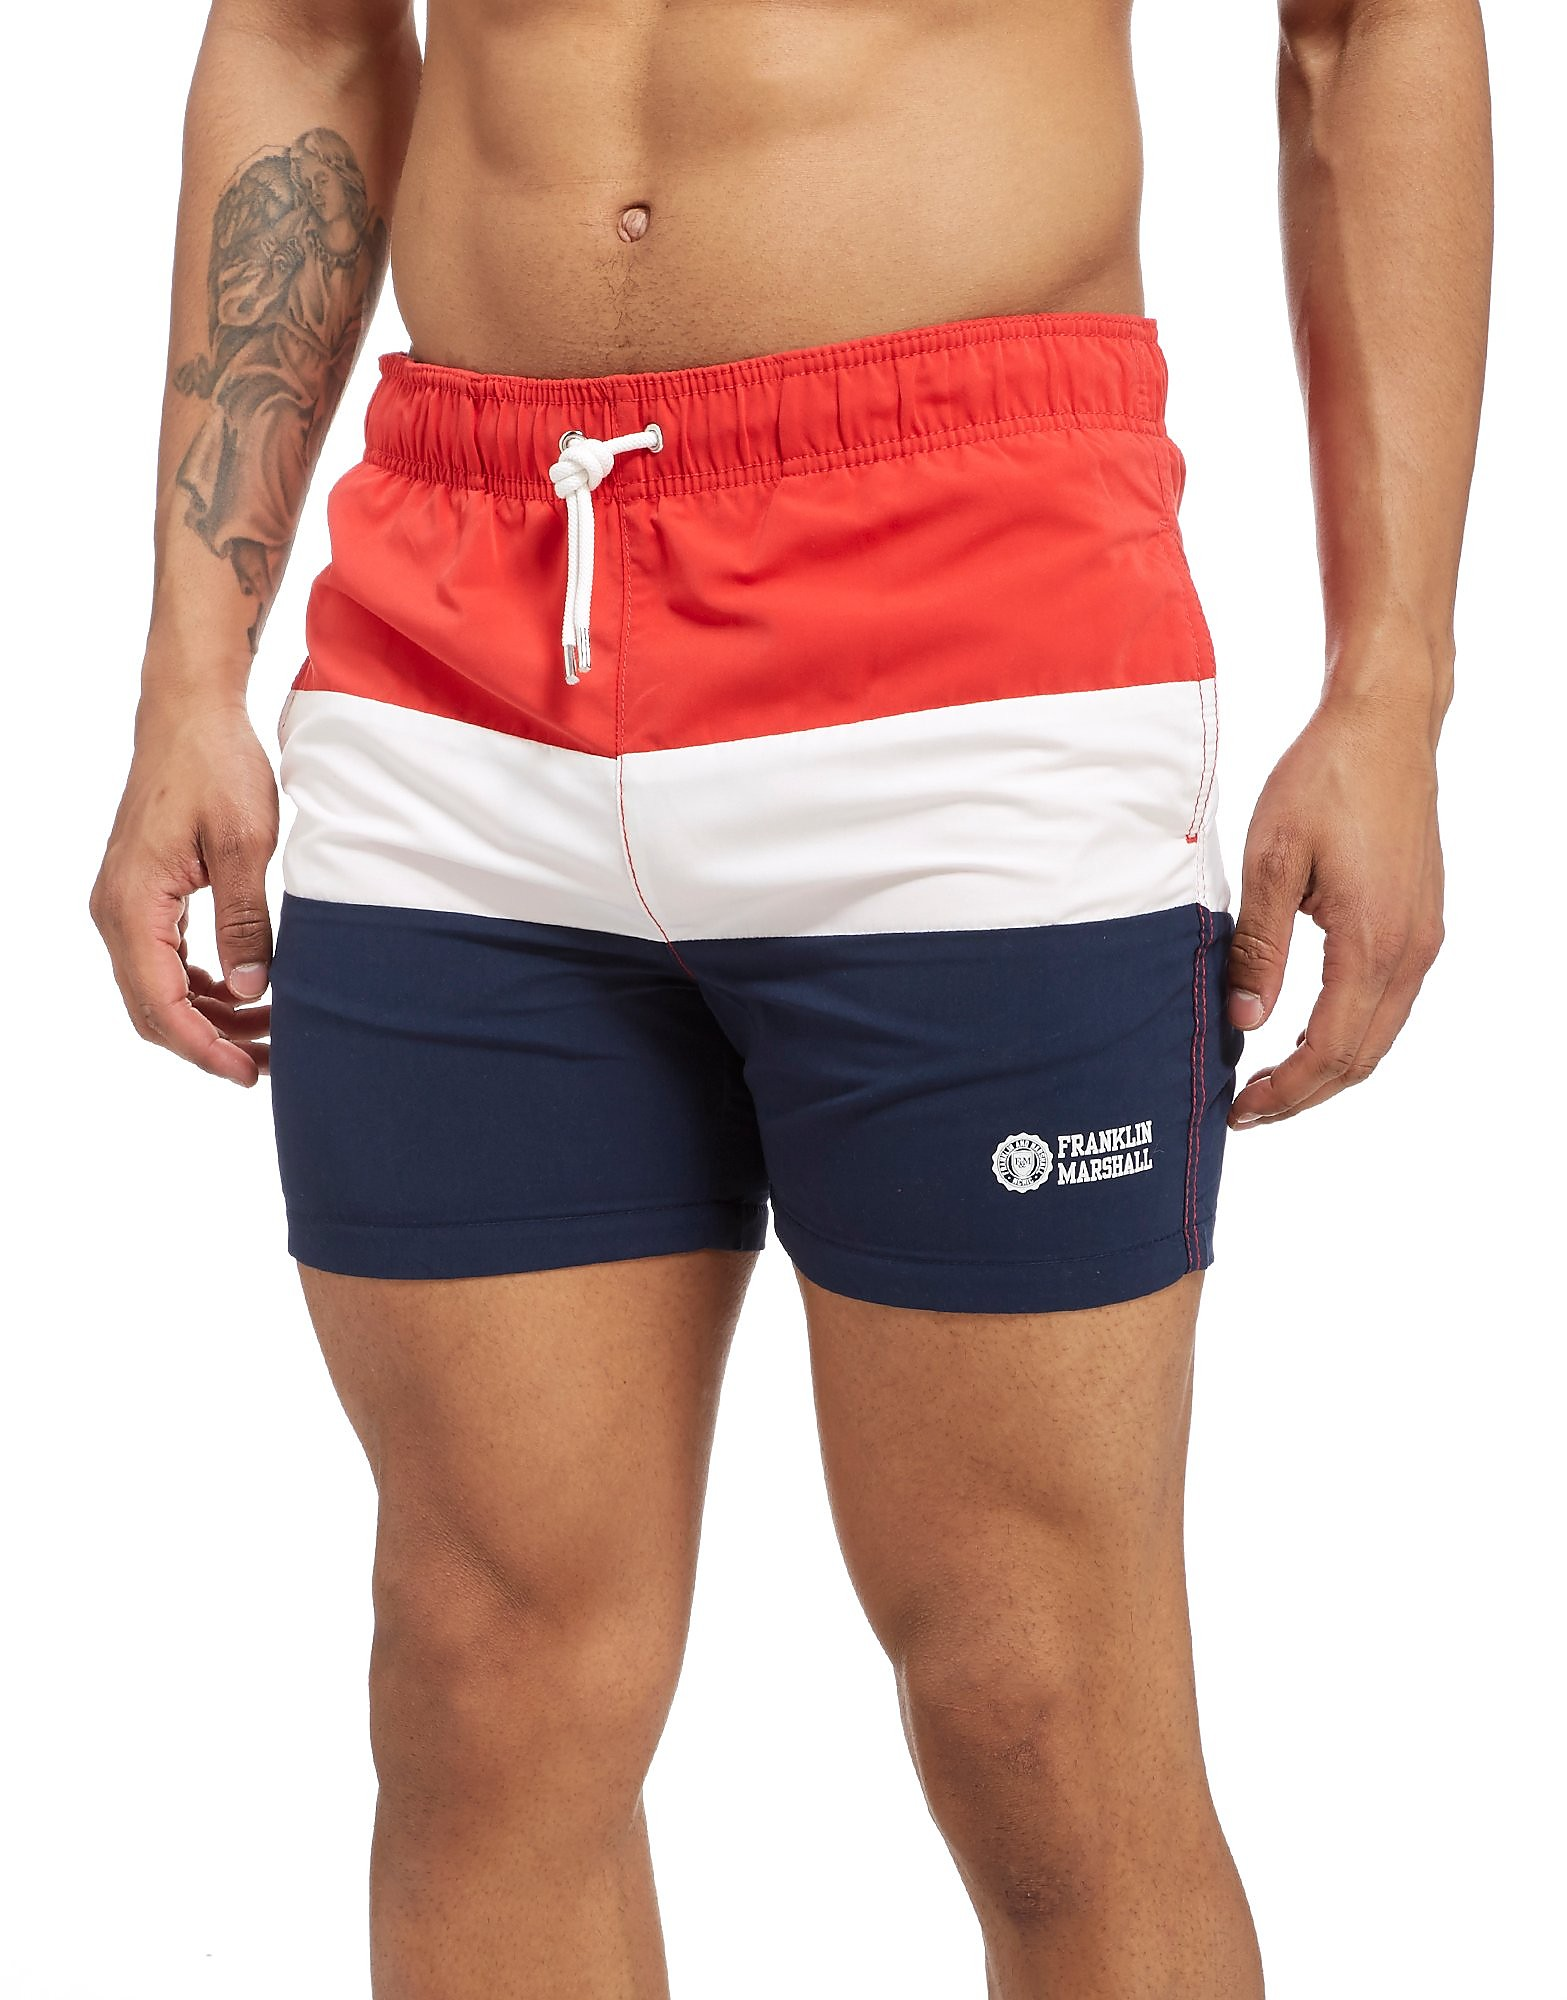 Franklin & Marshall Colour Block Swimshorts